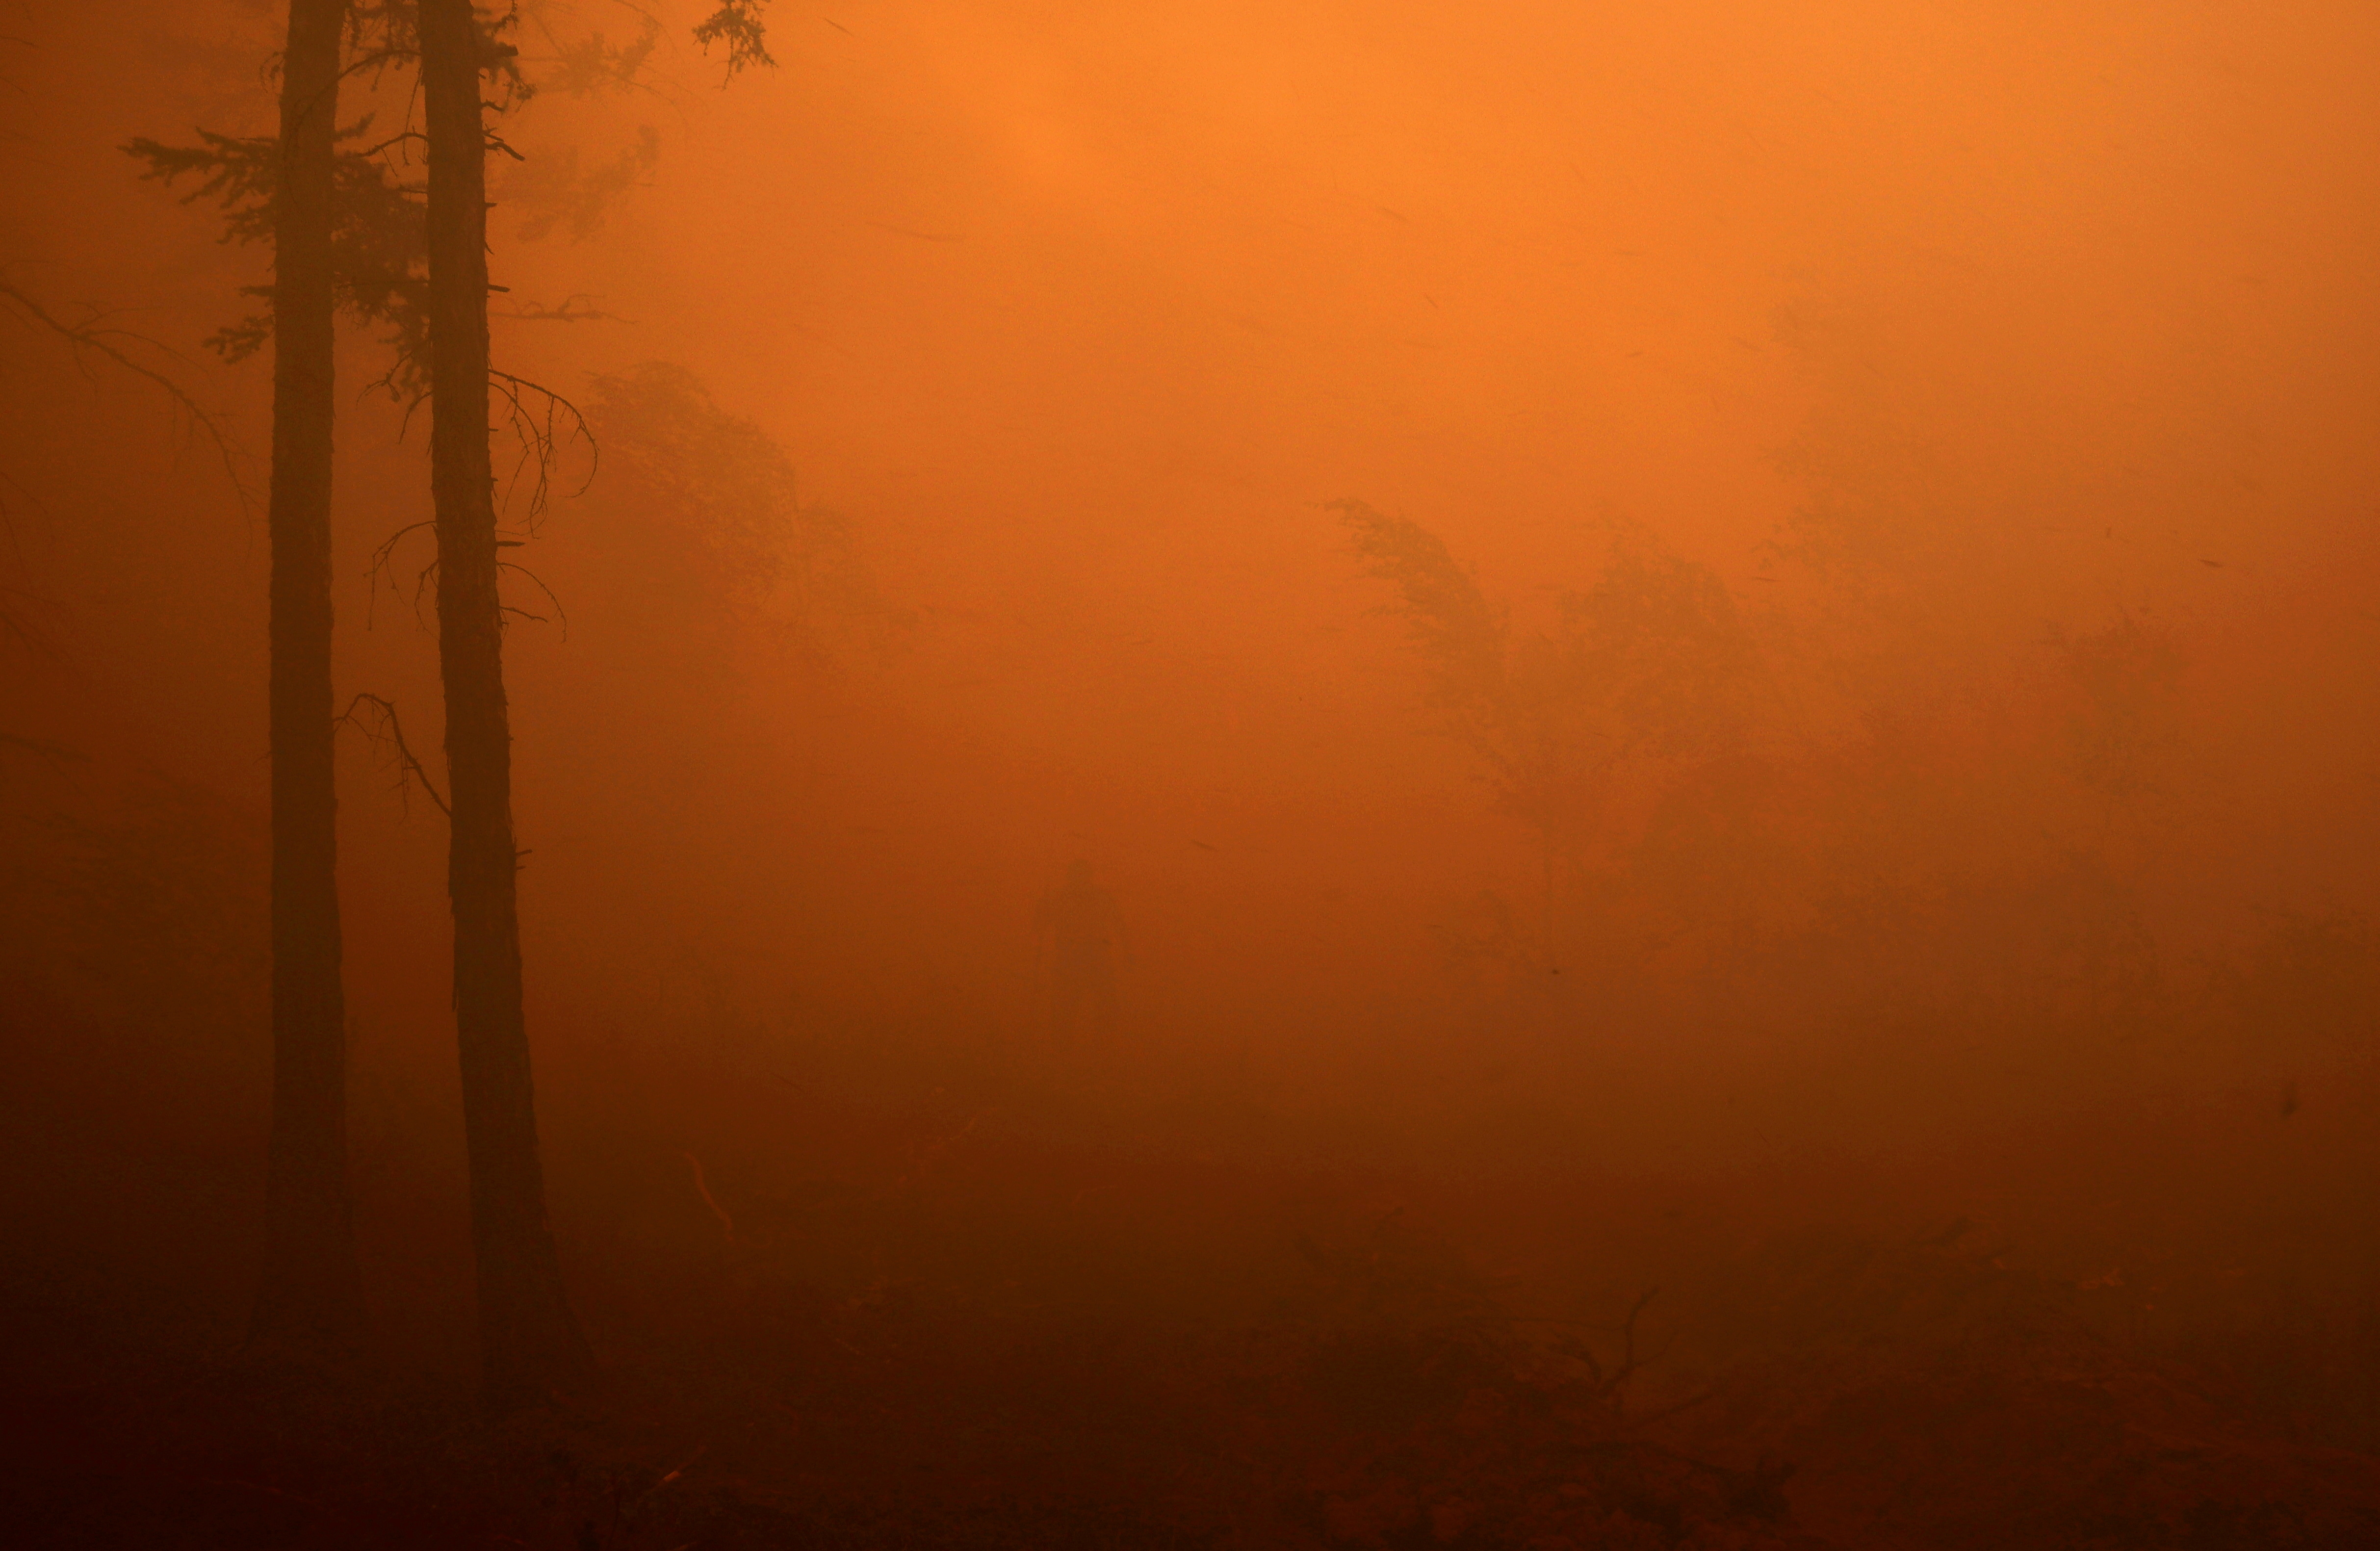 A firefighter works to extinguish a forest fire near the village of Magaras in the region of Yakutia, Russia July 17, 2021. REUTERS/Roman Kutukov/File Photo